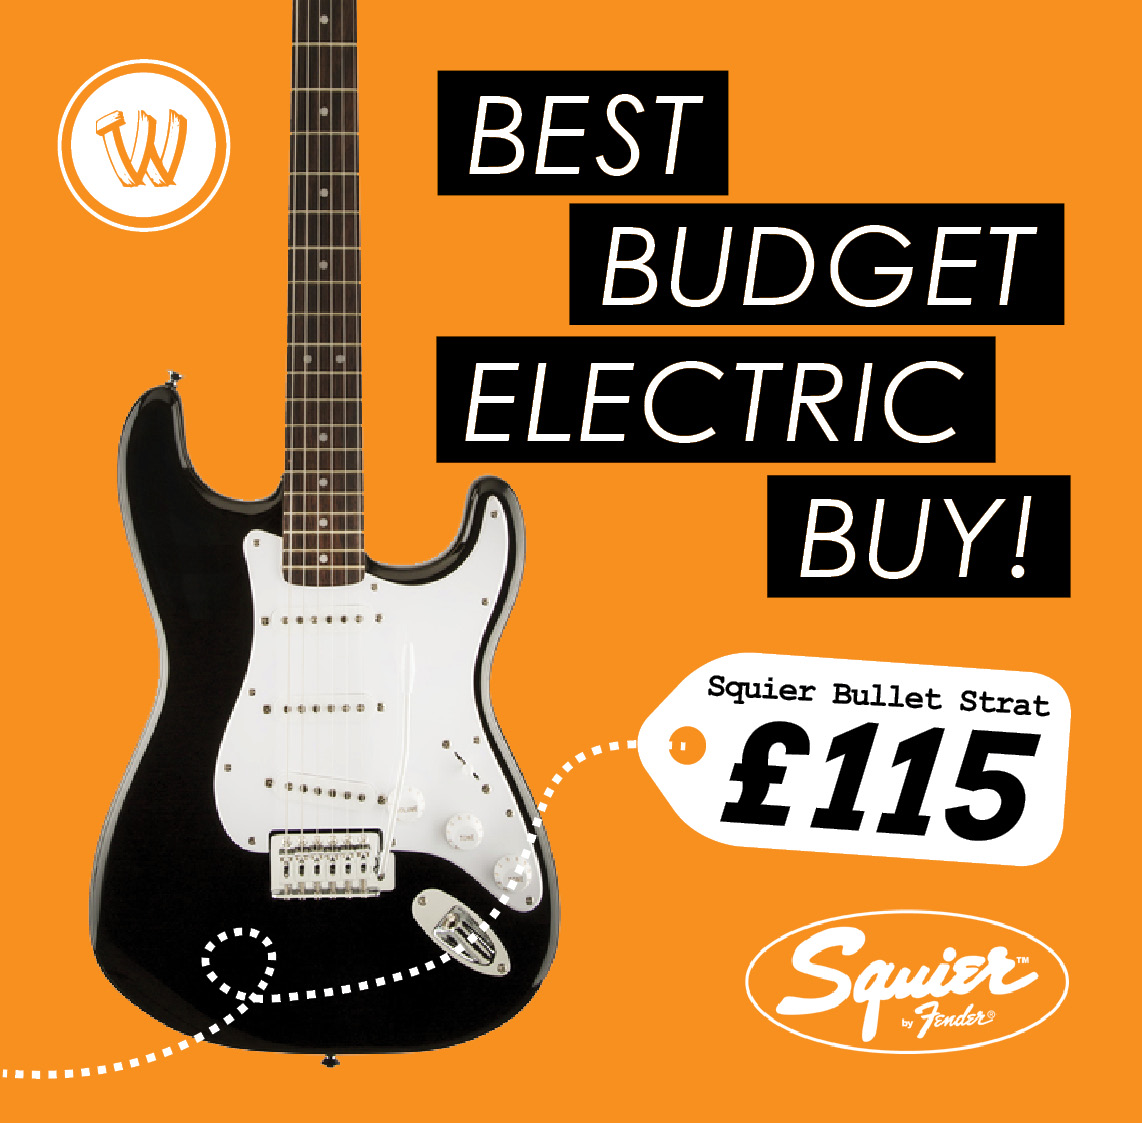 Best Budget Electric Buy